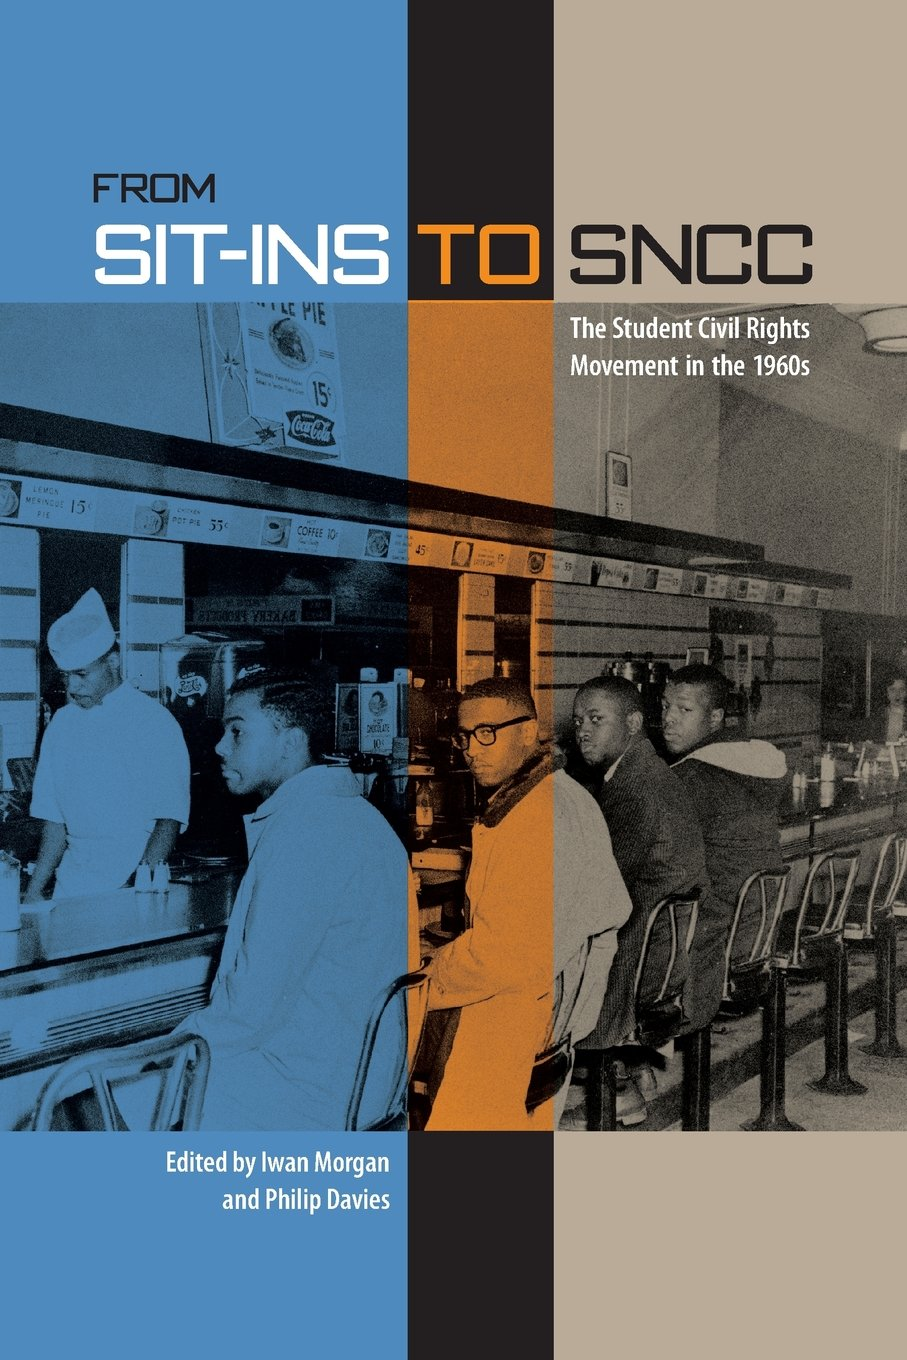 From Sit-Ins to SNCC: The Student Civil Rights Movement in the 1960s-Click the link to learn more about this book